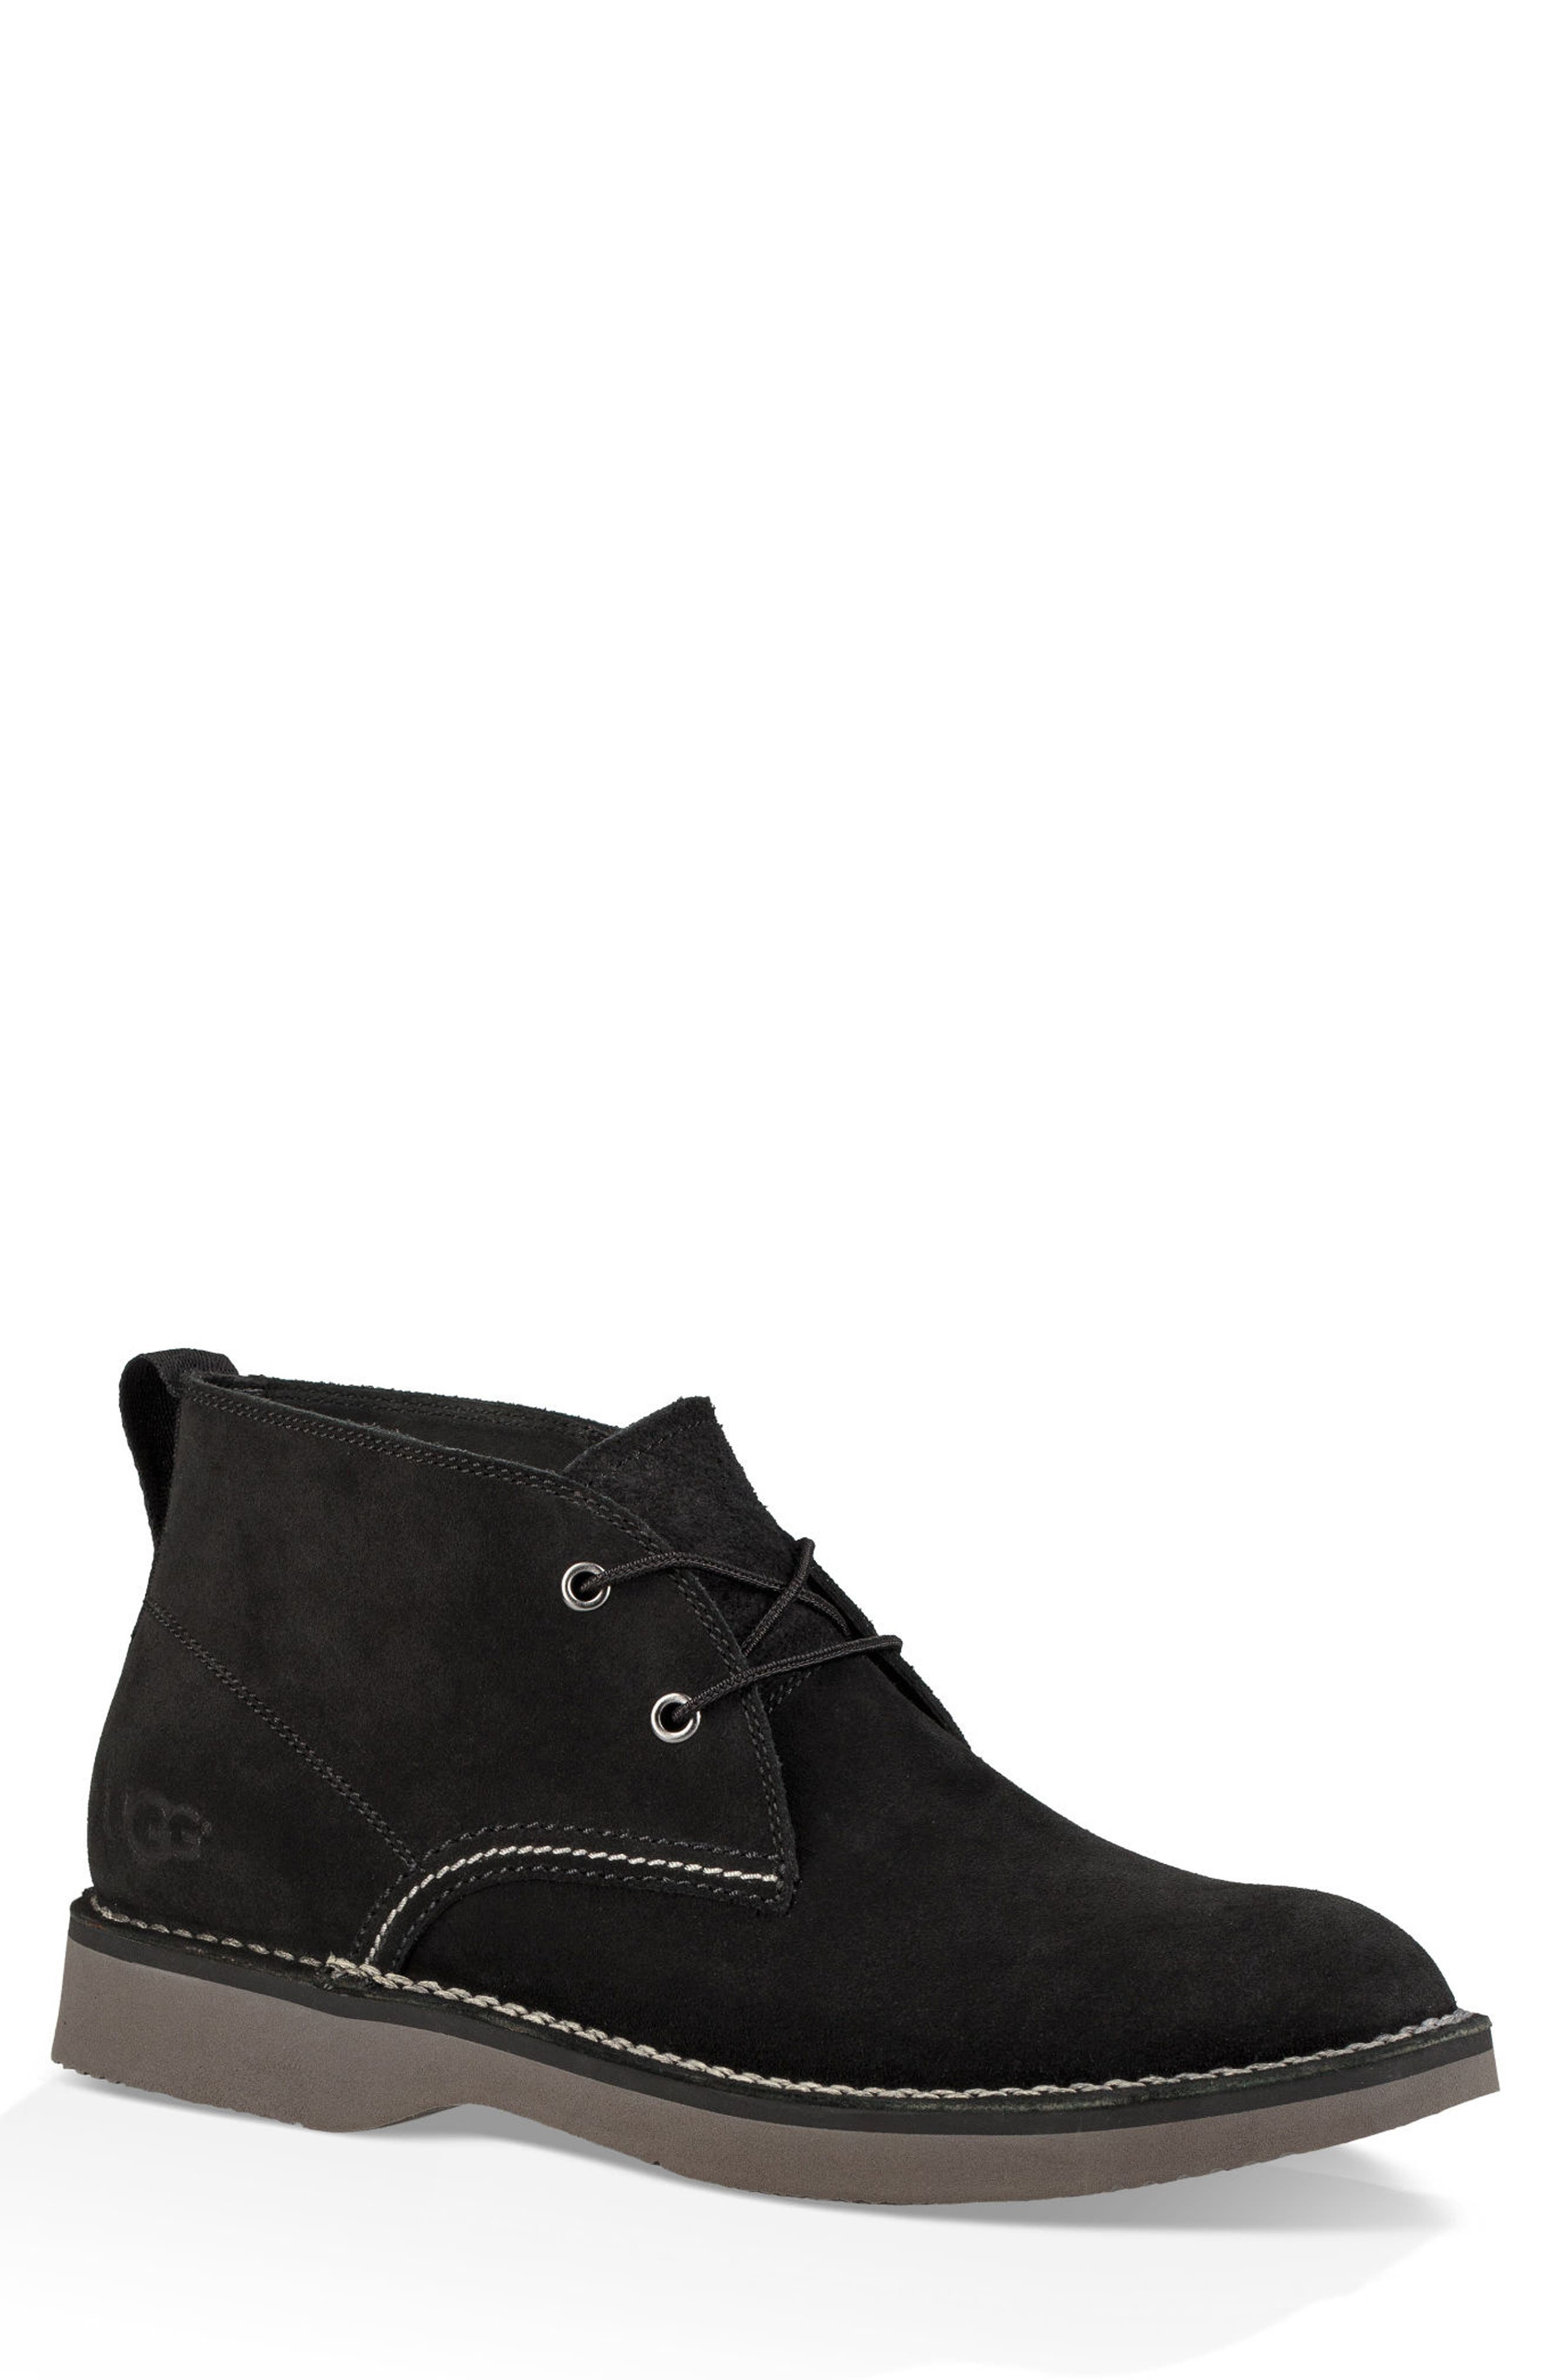 Camino Water Resistant Chukka Boot,                         Main,                         color, BLACK